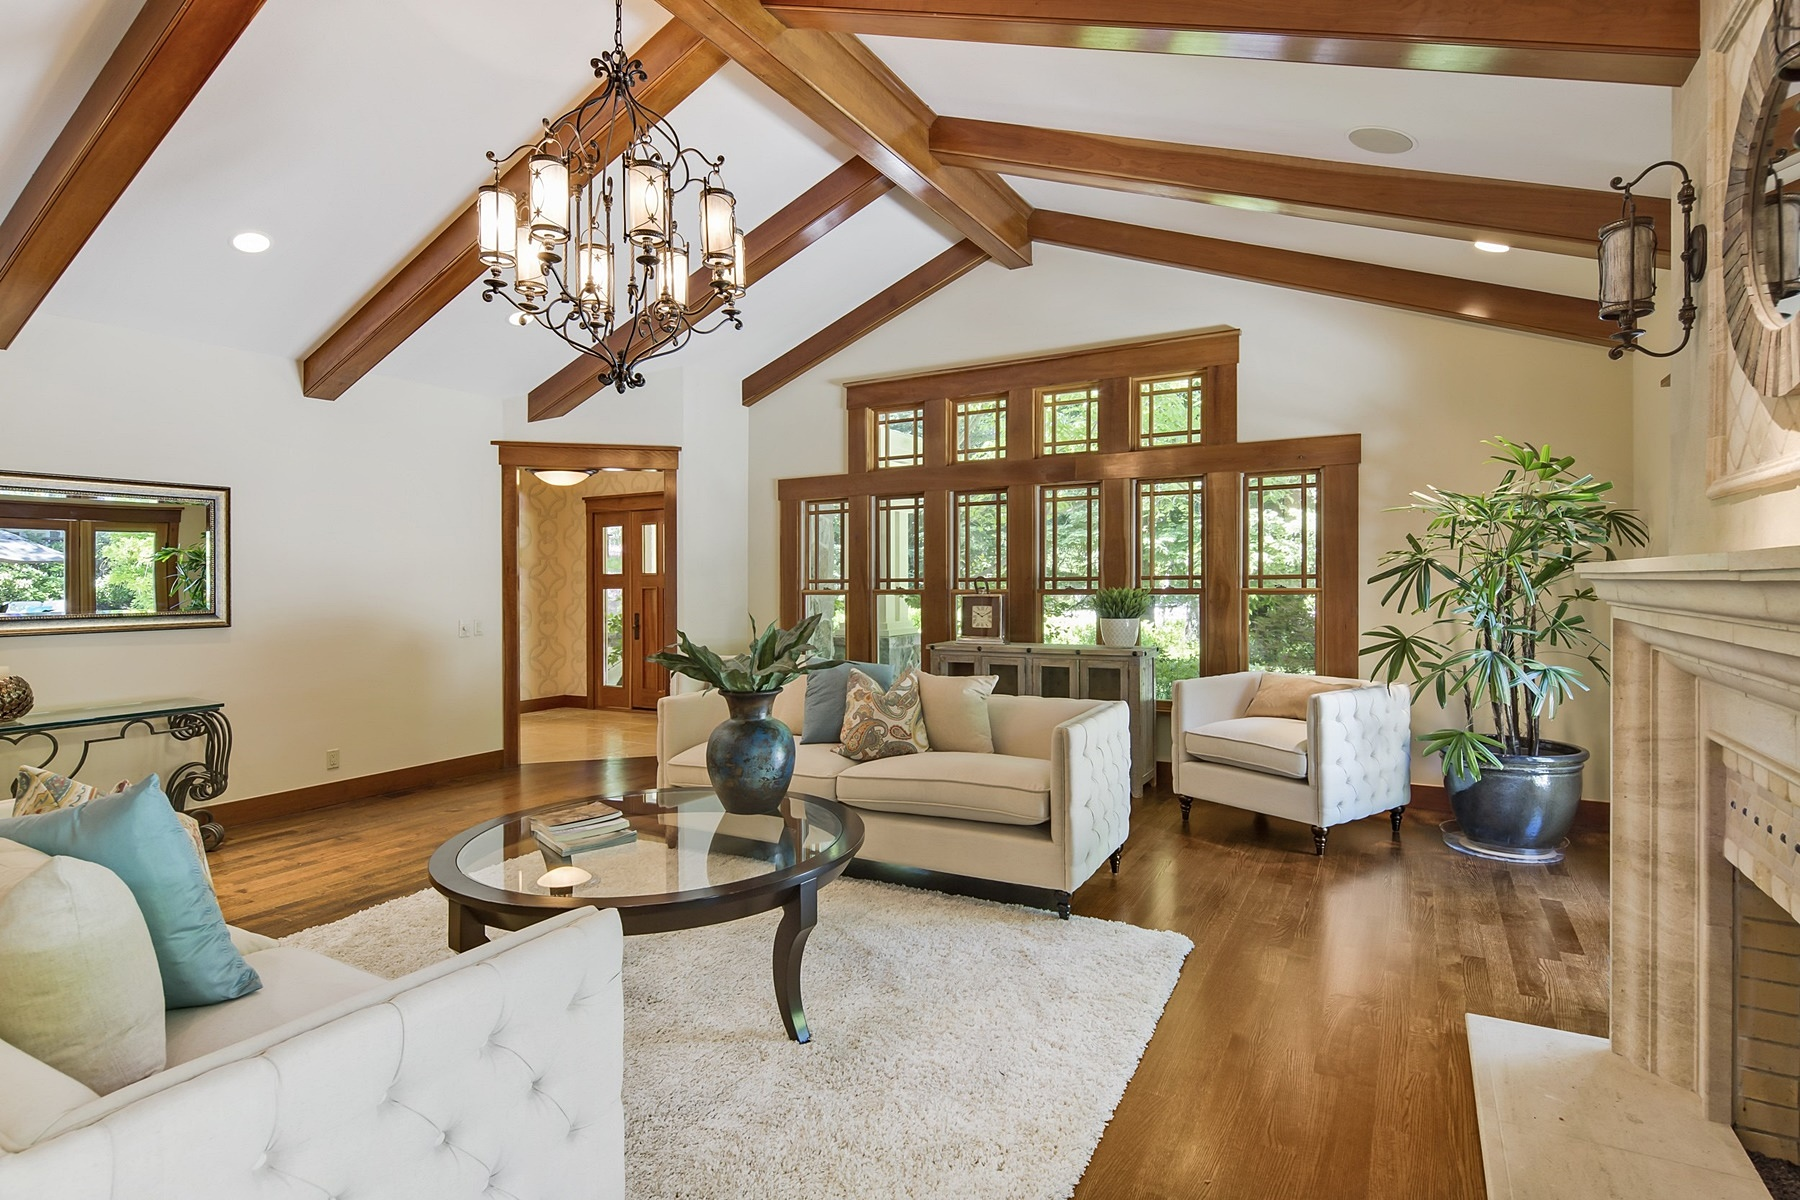 Additional photo for property listing at Charming Private Estate ~ Diablo Country Club 1830 Alameda Diablo Diablo, California 94528 United States